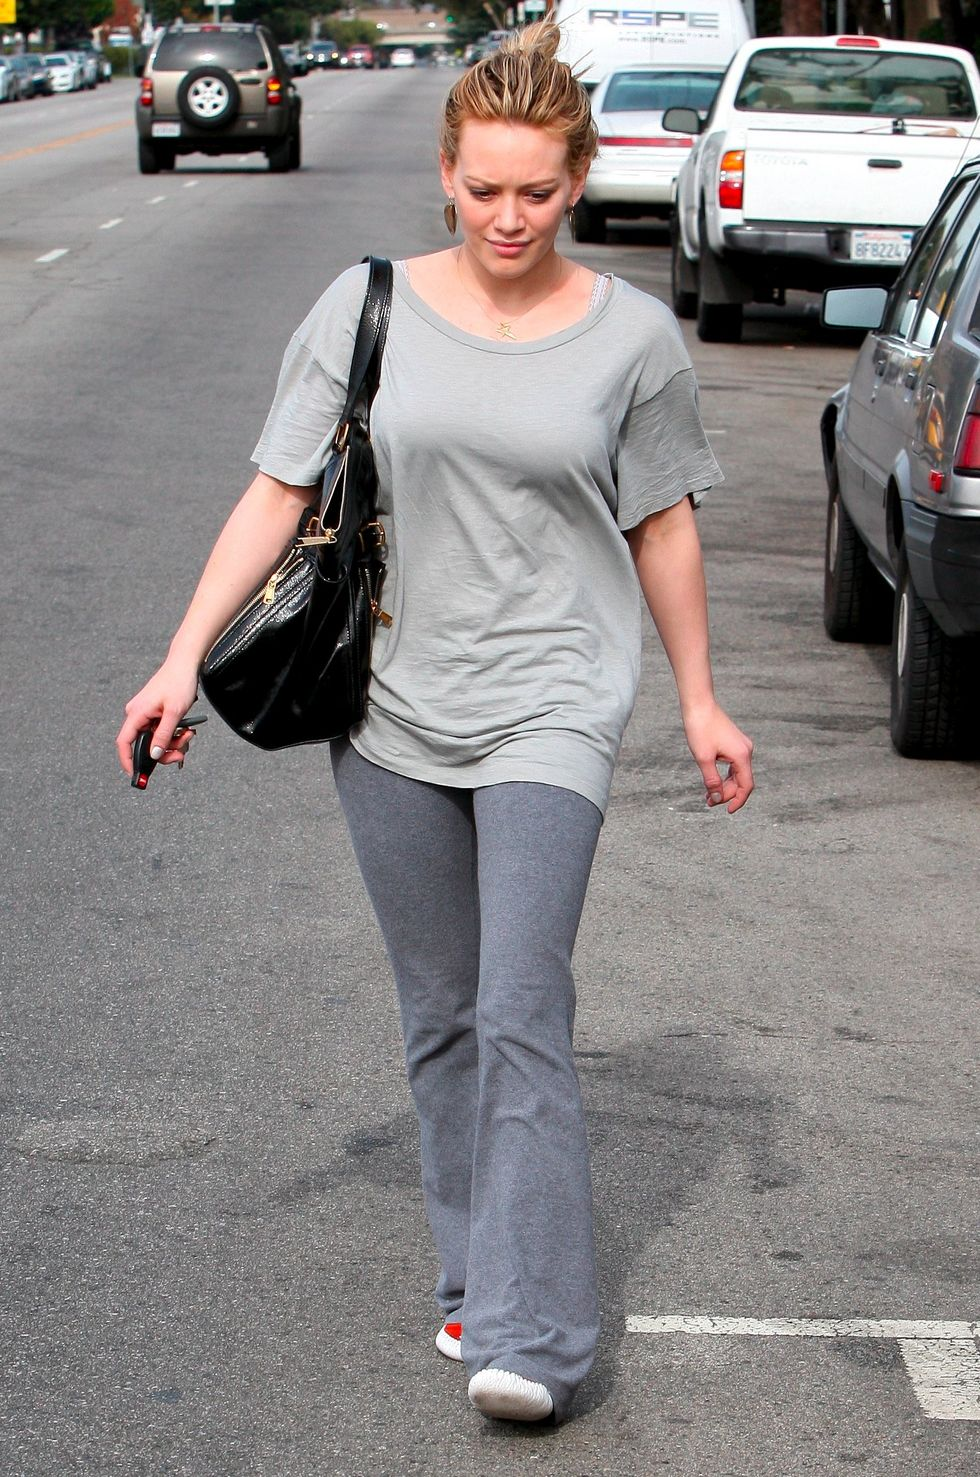 hilary-duff-candids-in-los-angeles-3-01